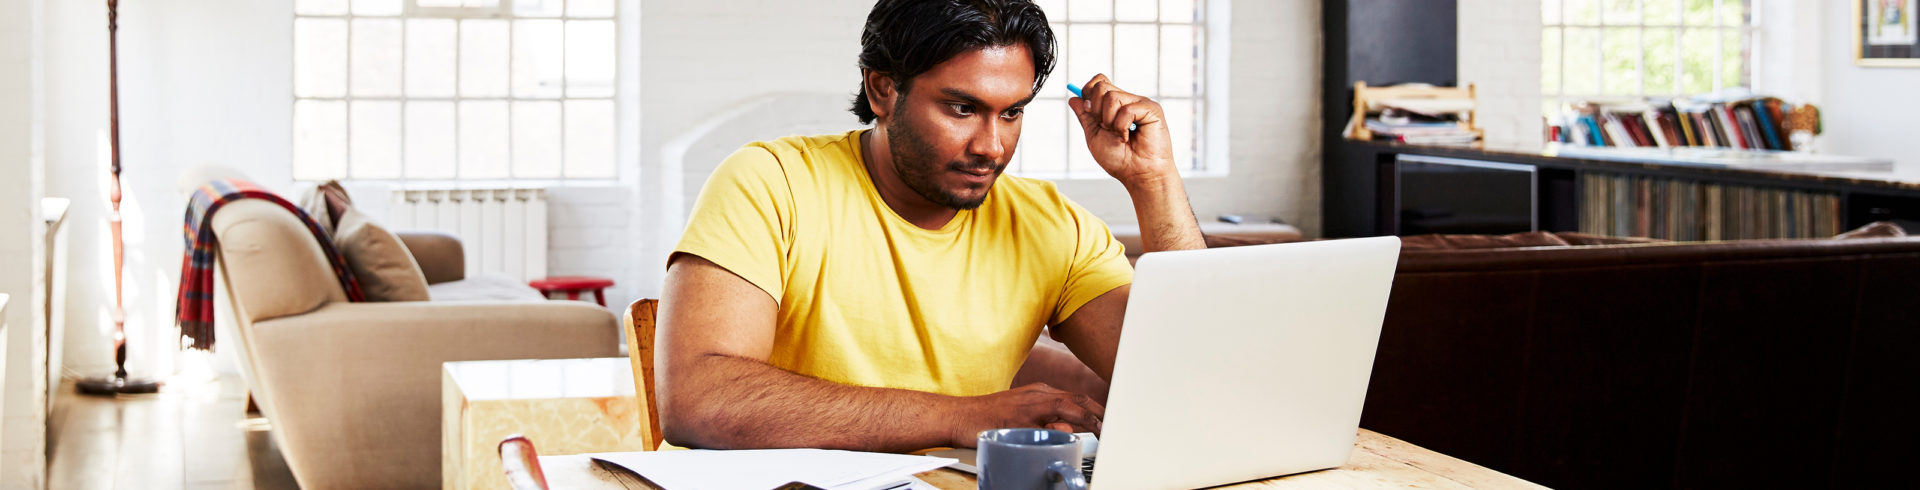 Image of man working on his laptop